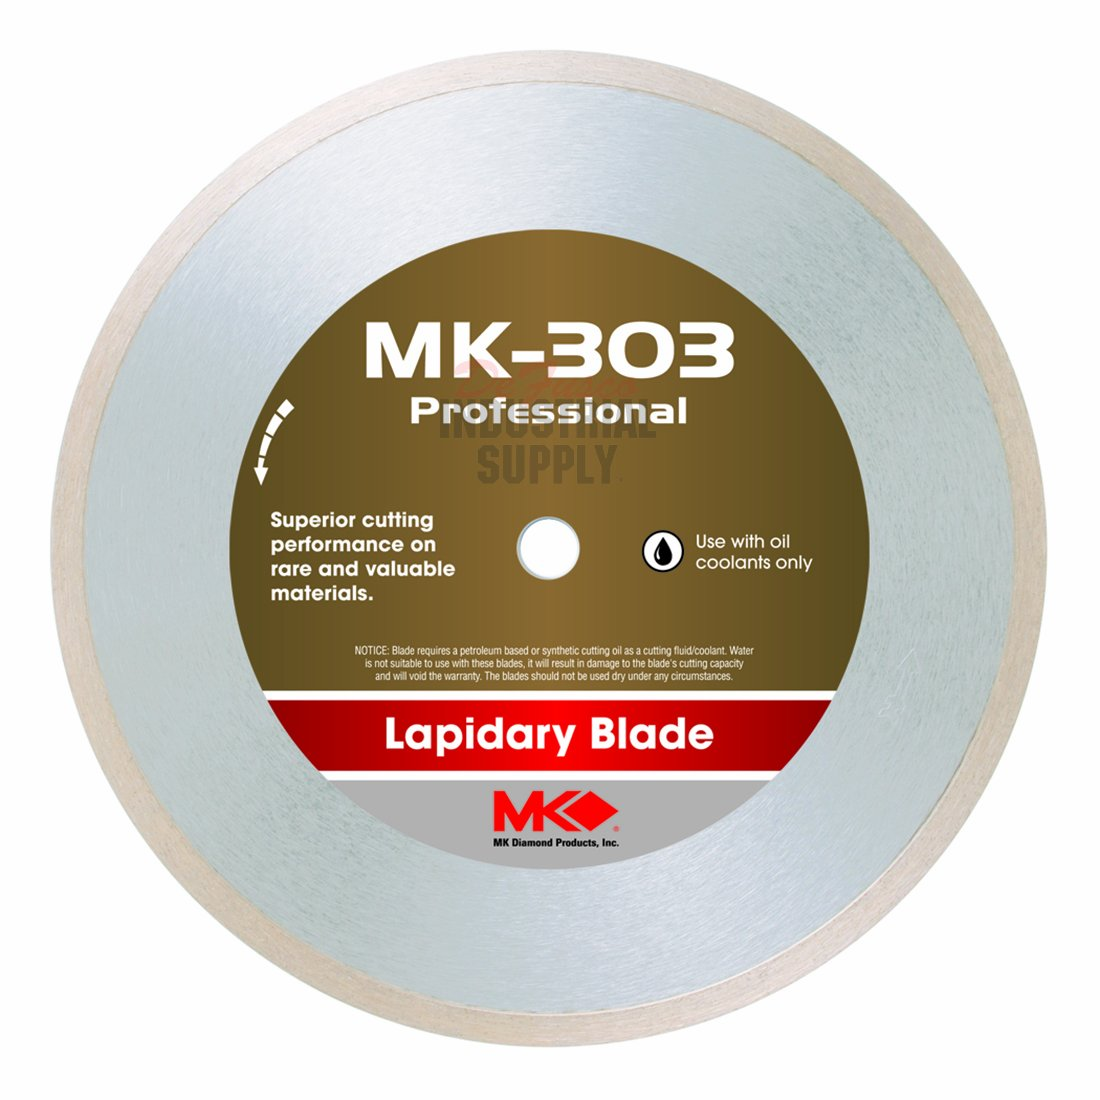 MK Diamond 156723 MK-303 Professional 8-Inch Diameter Lapidary Blade by .060-Inch wide by 5/8-Inch Arbor